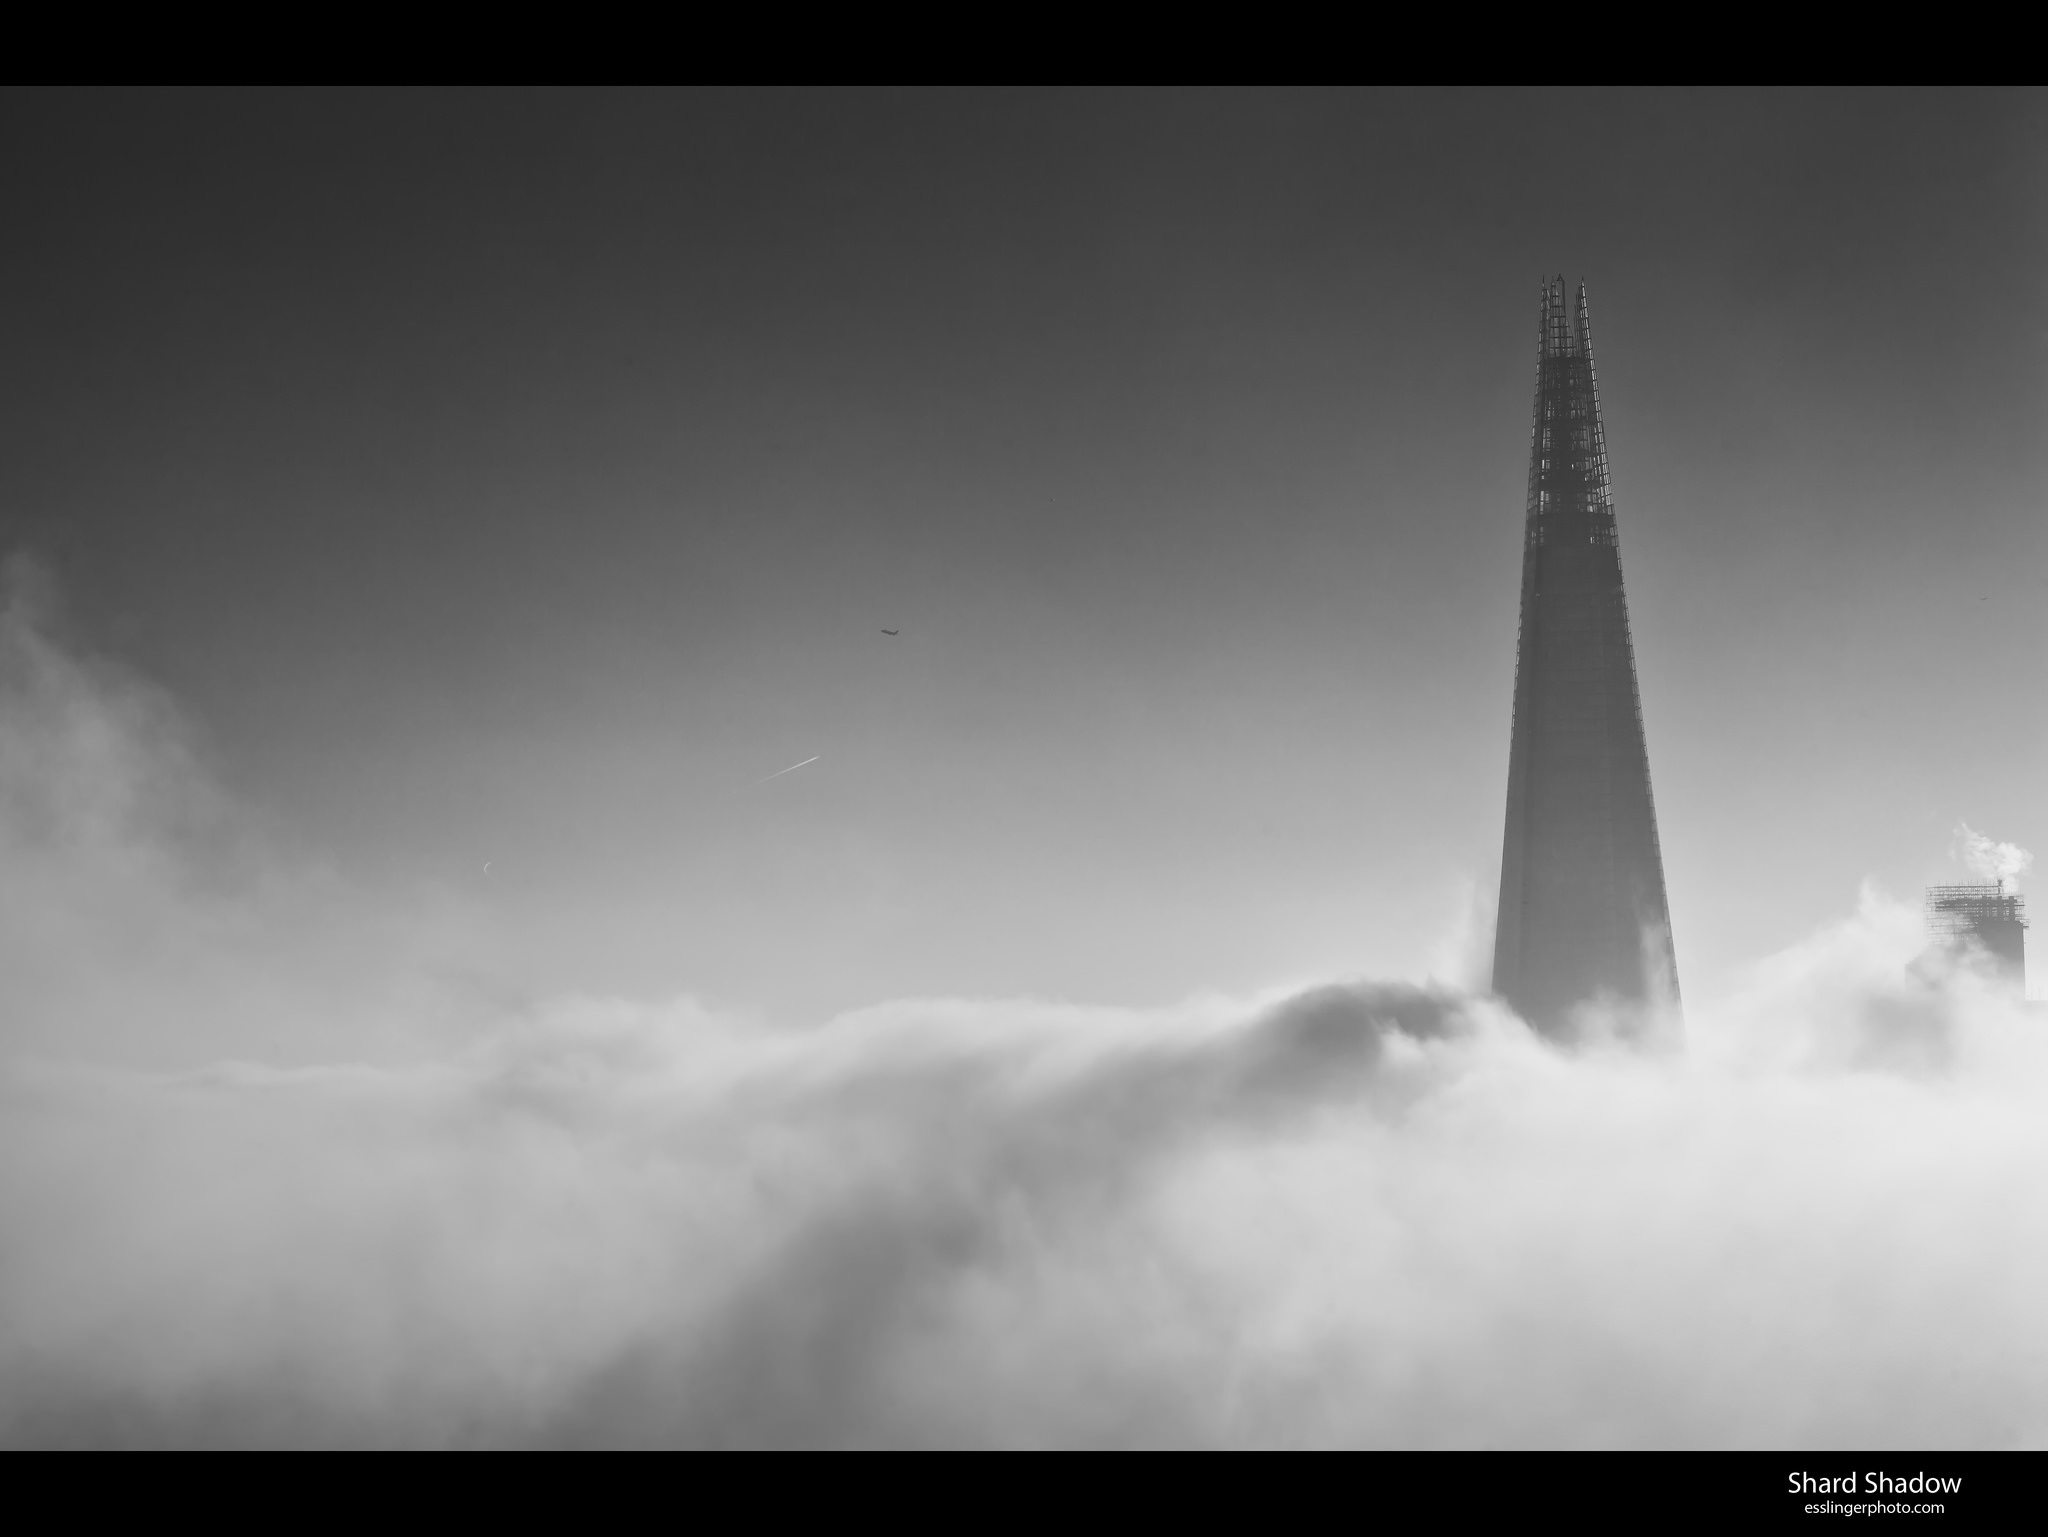 The Shard casts a long shadow over London fog.